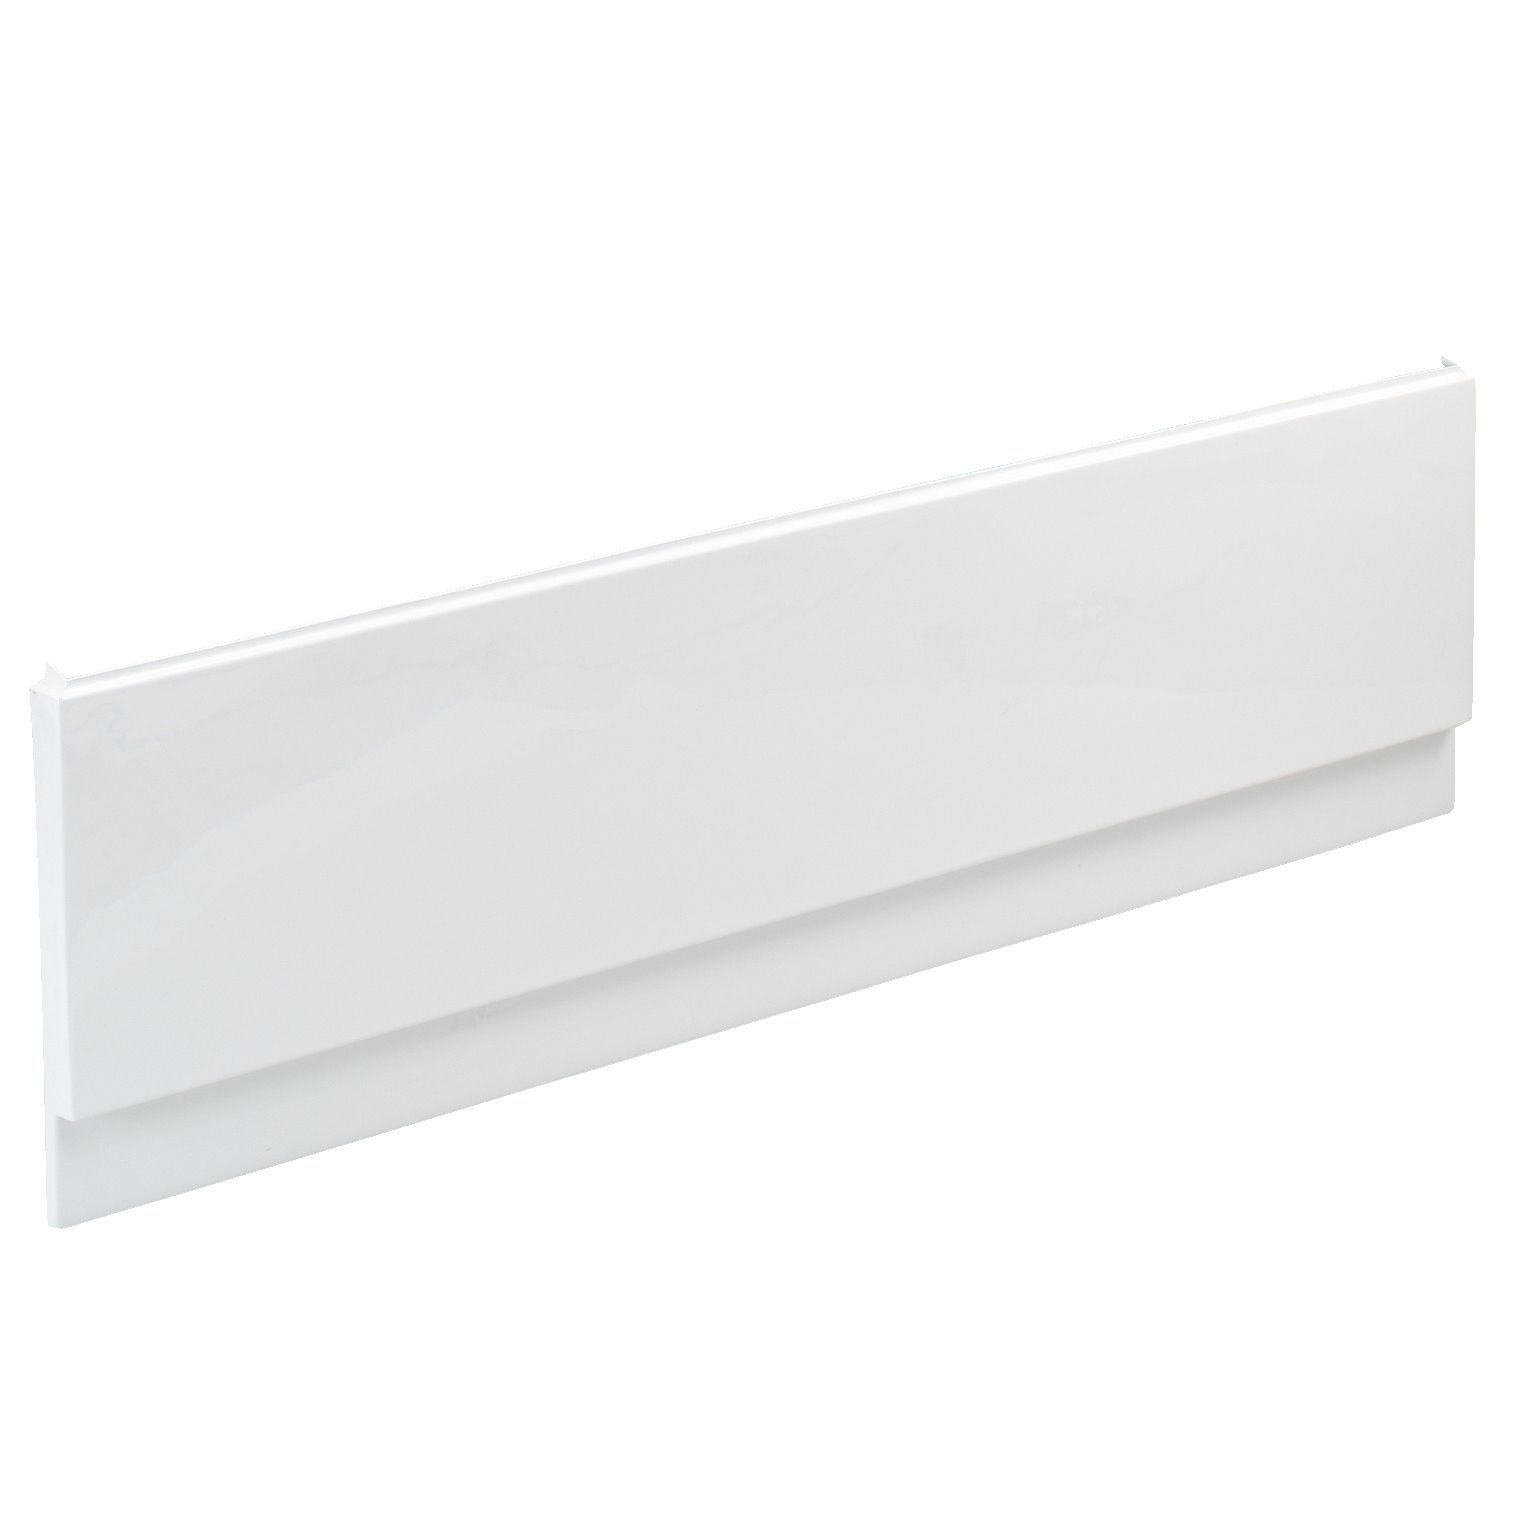 cooke lewis shaftesbury white bath front panel w 1500mm. Black Bedroom Furniture Sets. Home Design Ideas